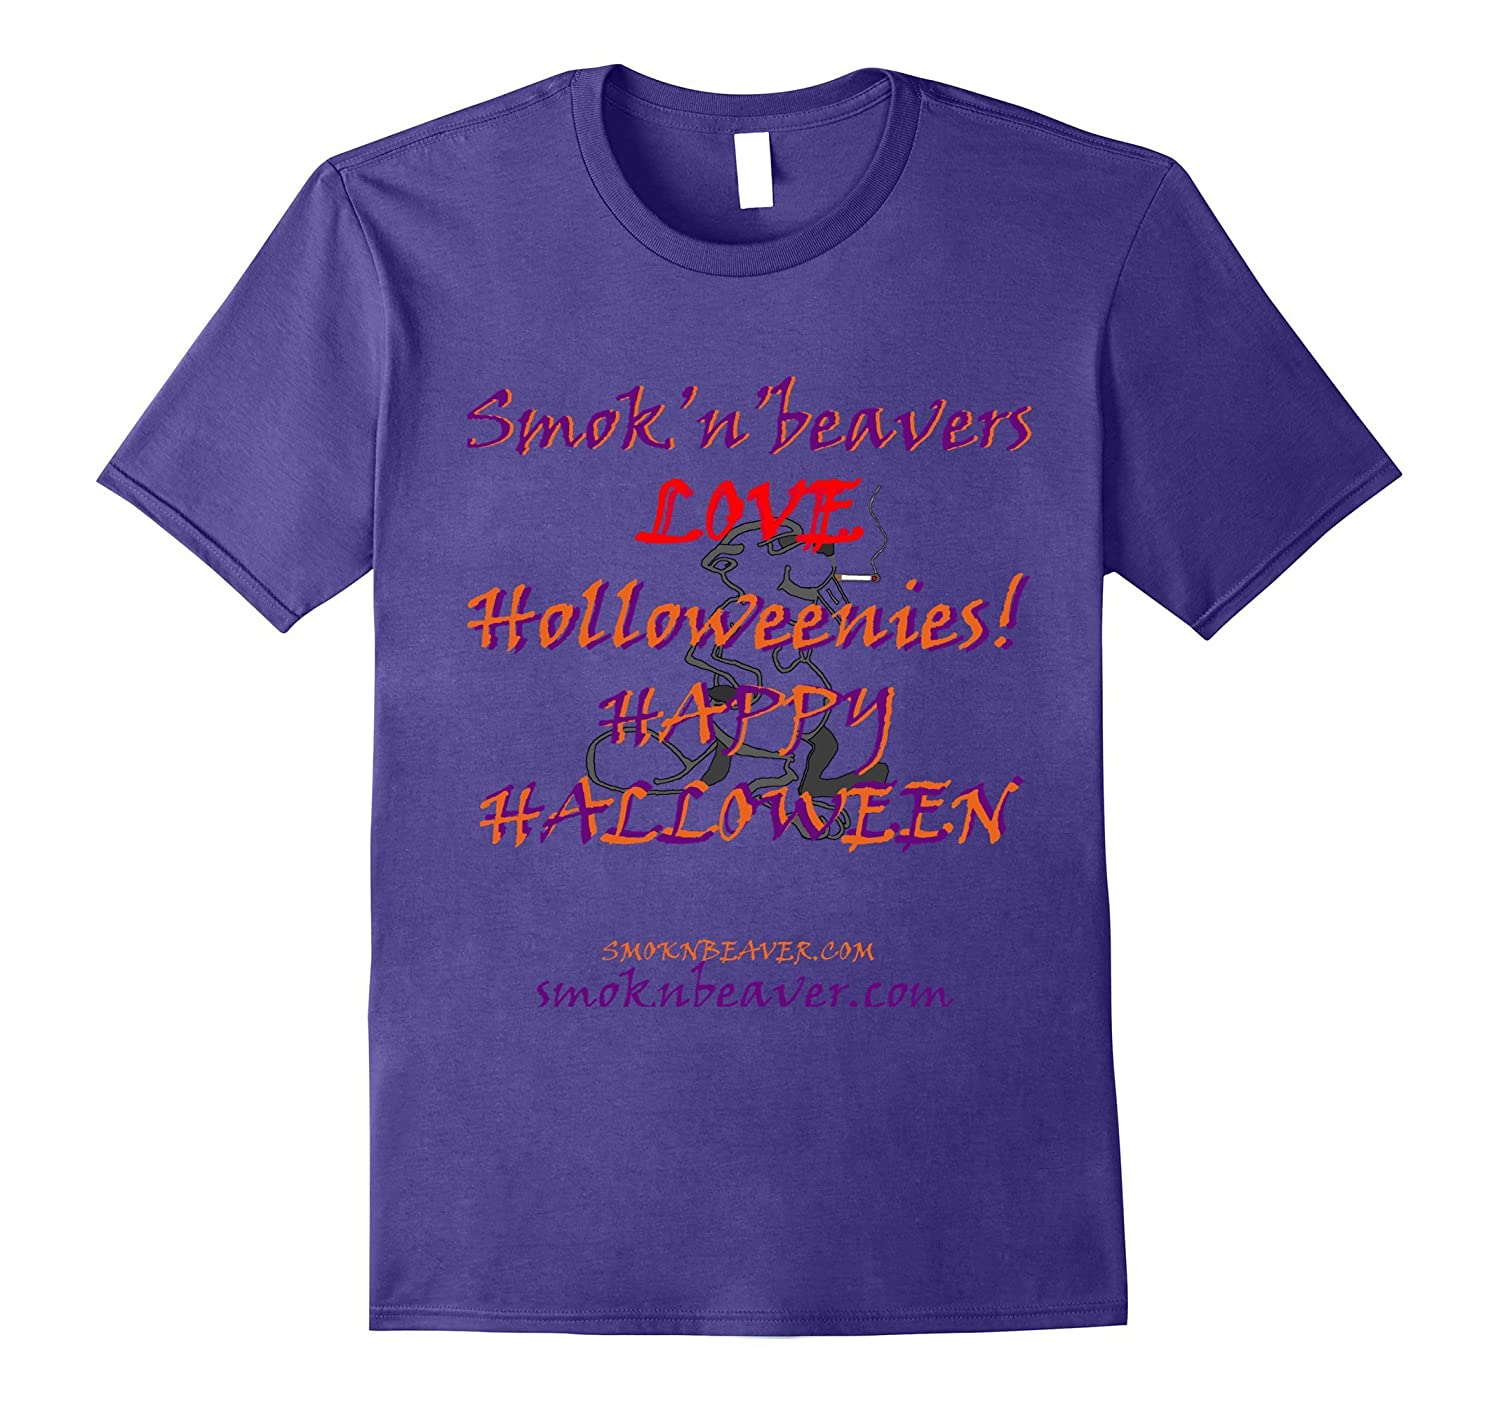 Smok'n'beavers LOVE Holloweenies! Happy Halloween-FL